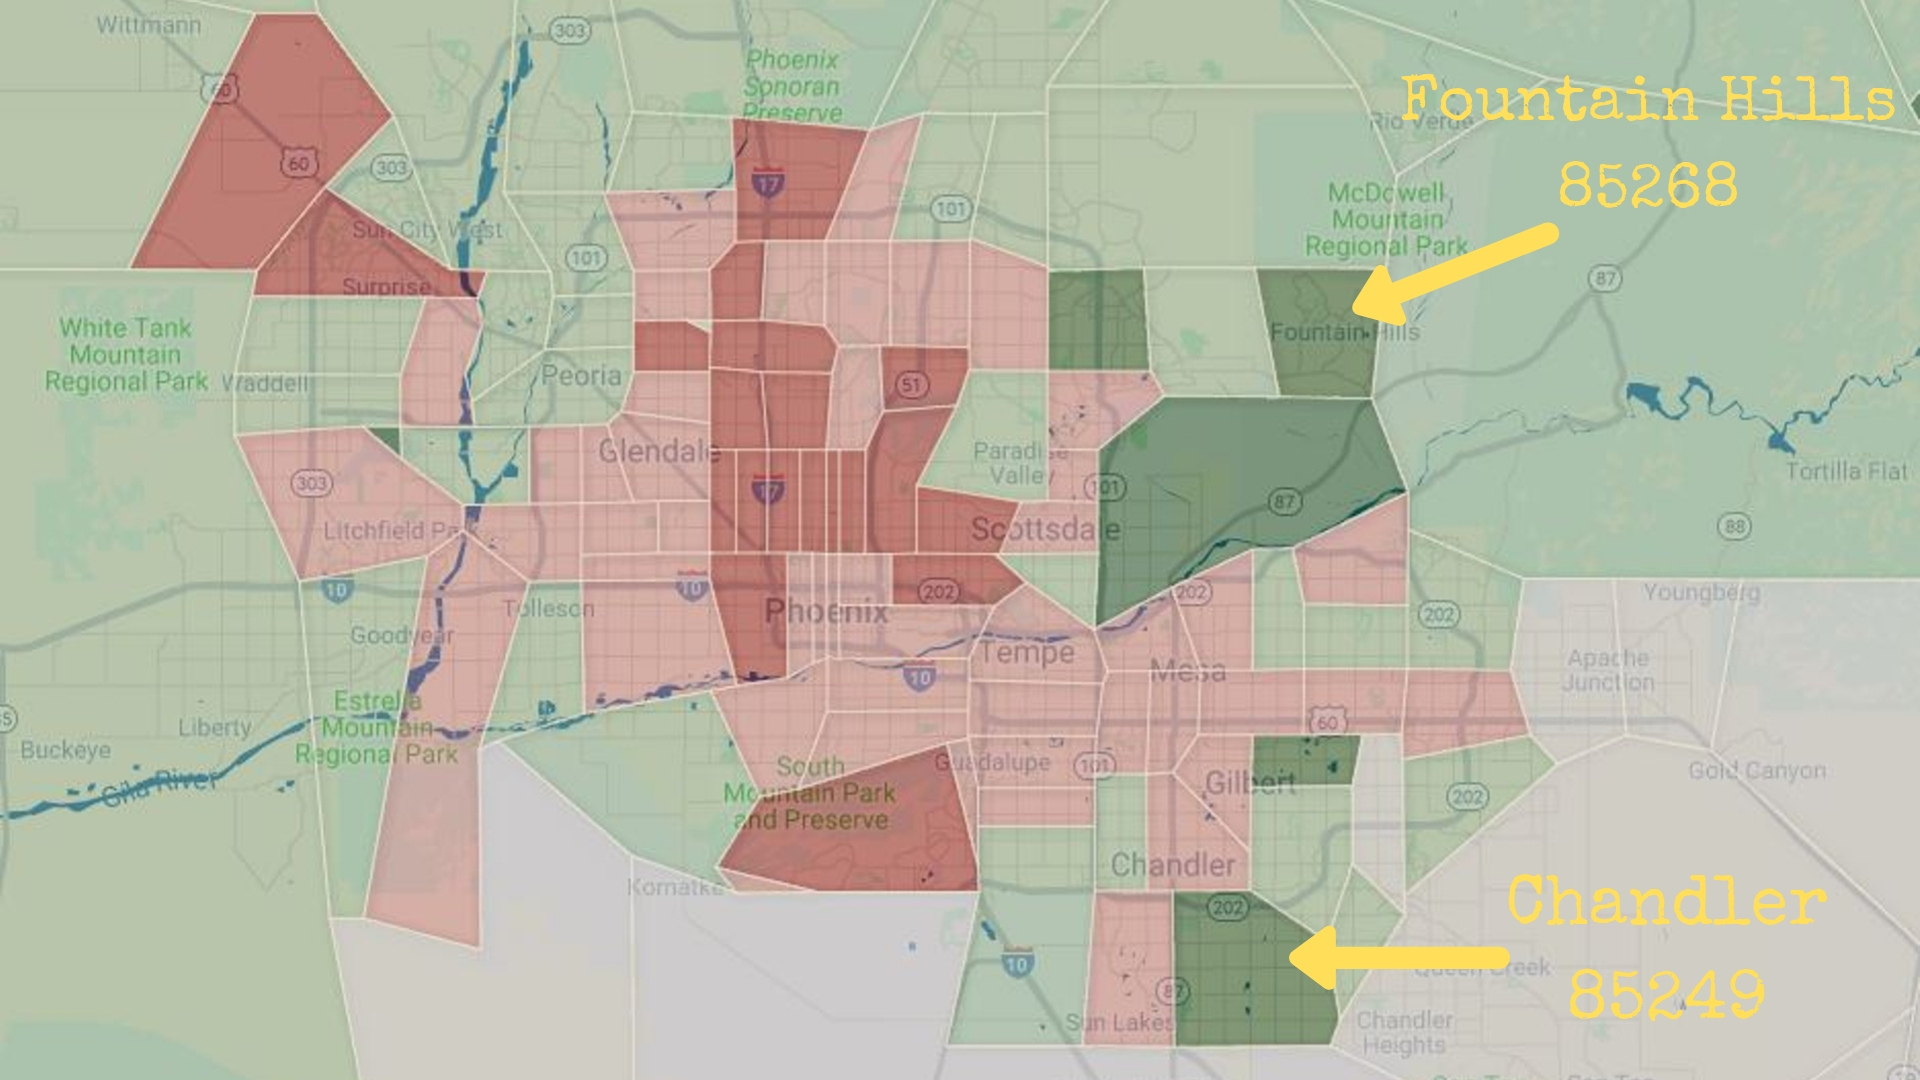 Fountain Hills Ties as Safest Zip Code in Phoenix | The ... on national debt map, dangerous animals map, the 100 map, ocdetf regions map, environmental problems map, family interaction map, abortion rights map, right to die map, drug court map, common law map, poverty level map, extradition map, residential density map, united states map, occult map, wage gap map, fatality map, income inequality map,